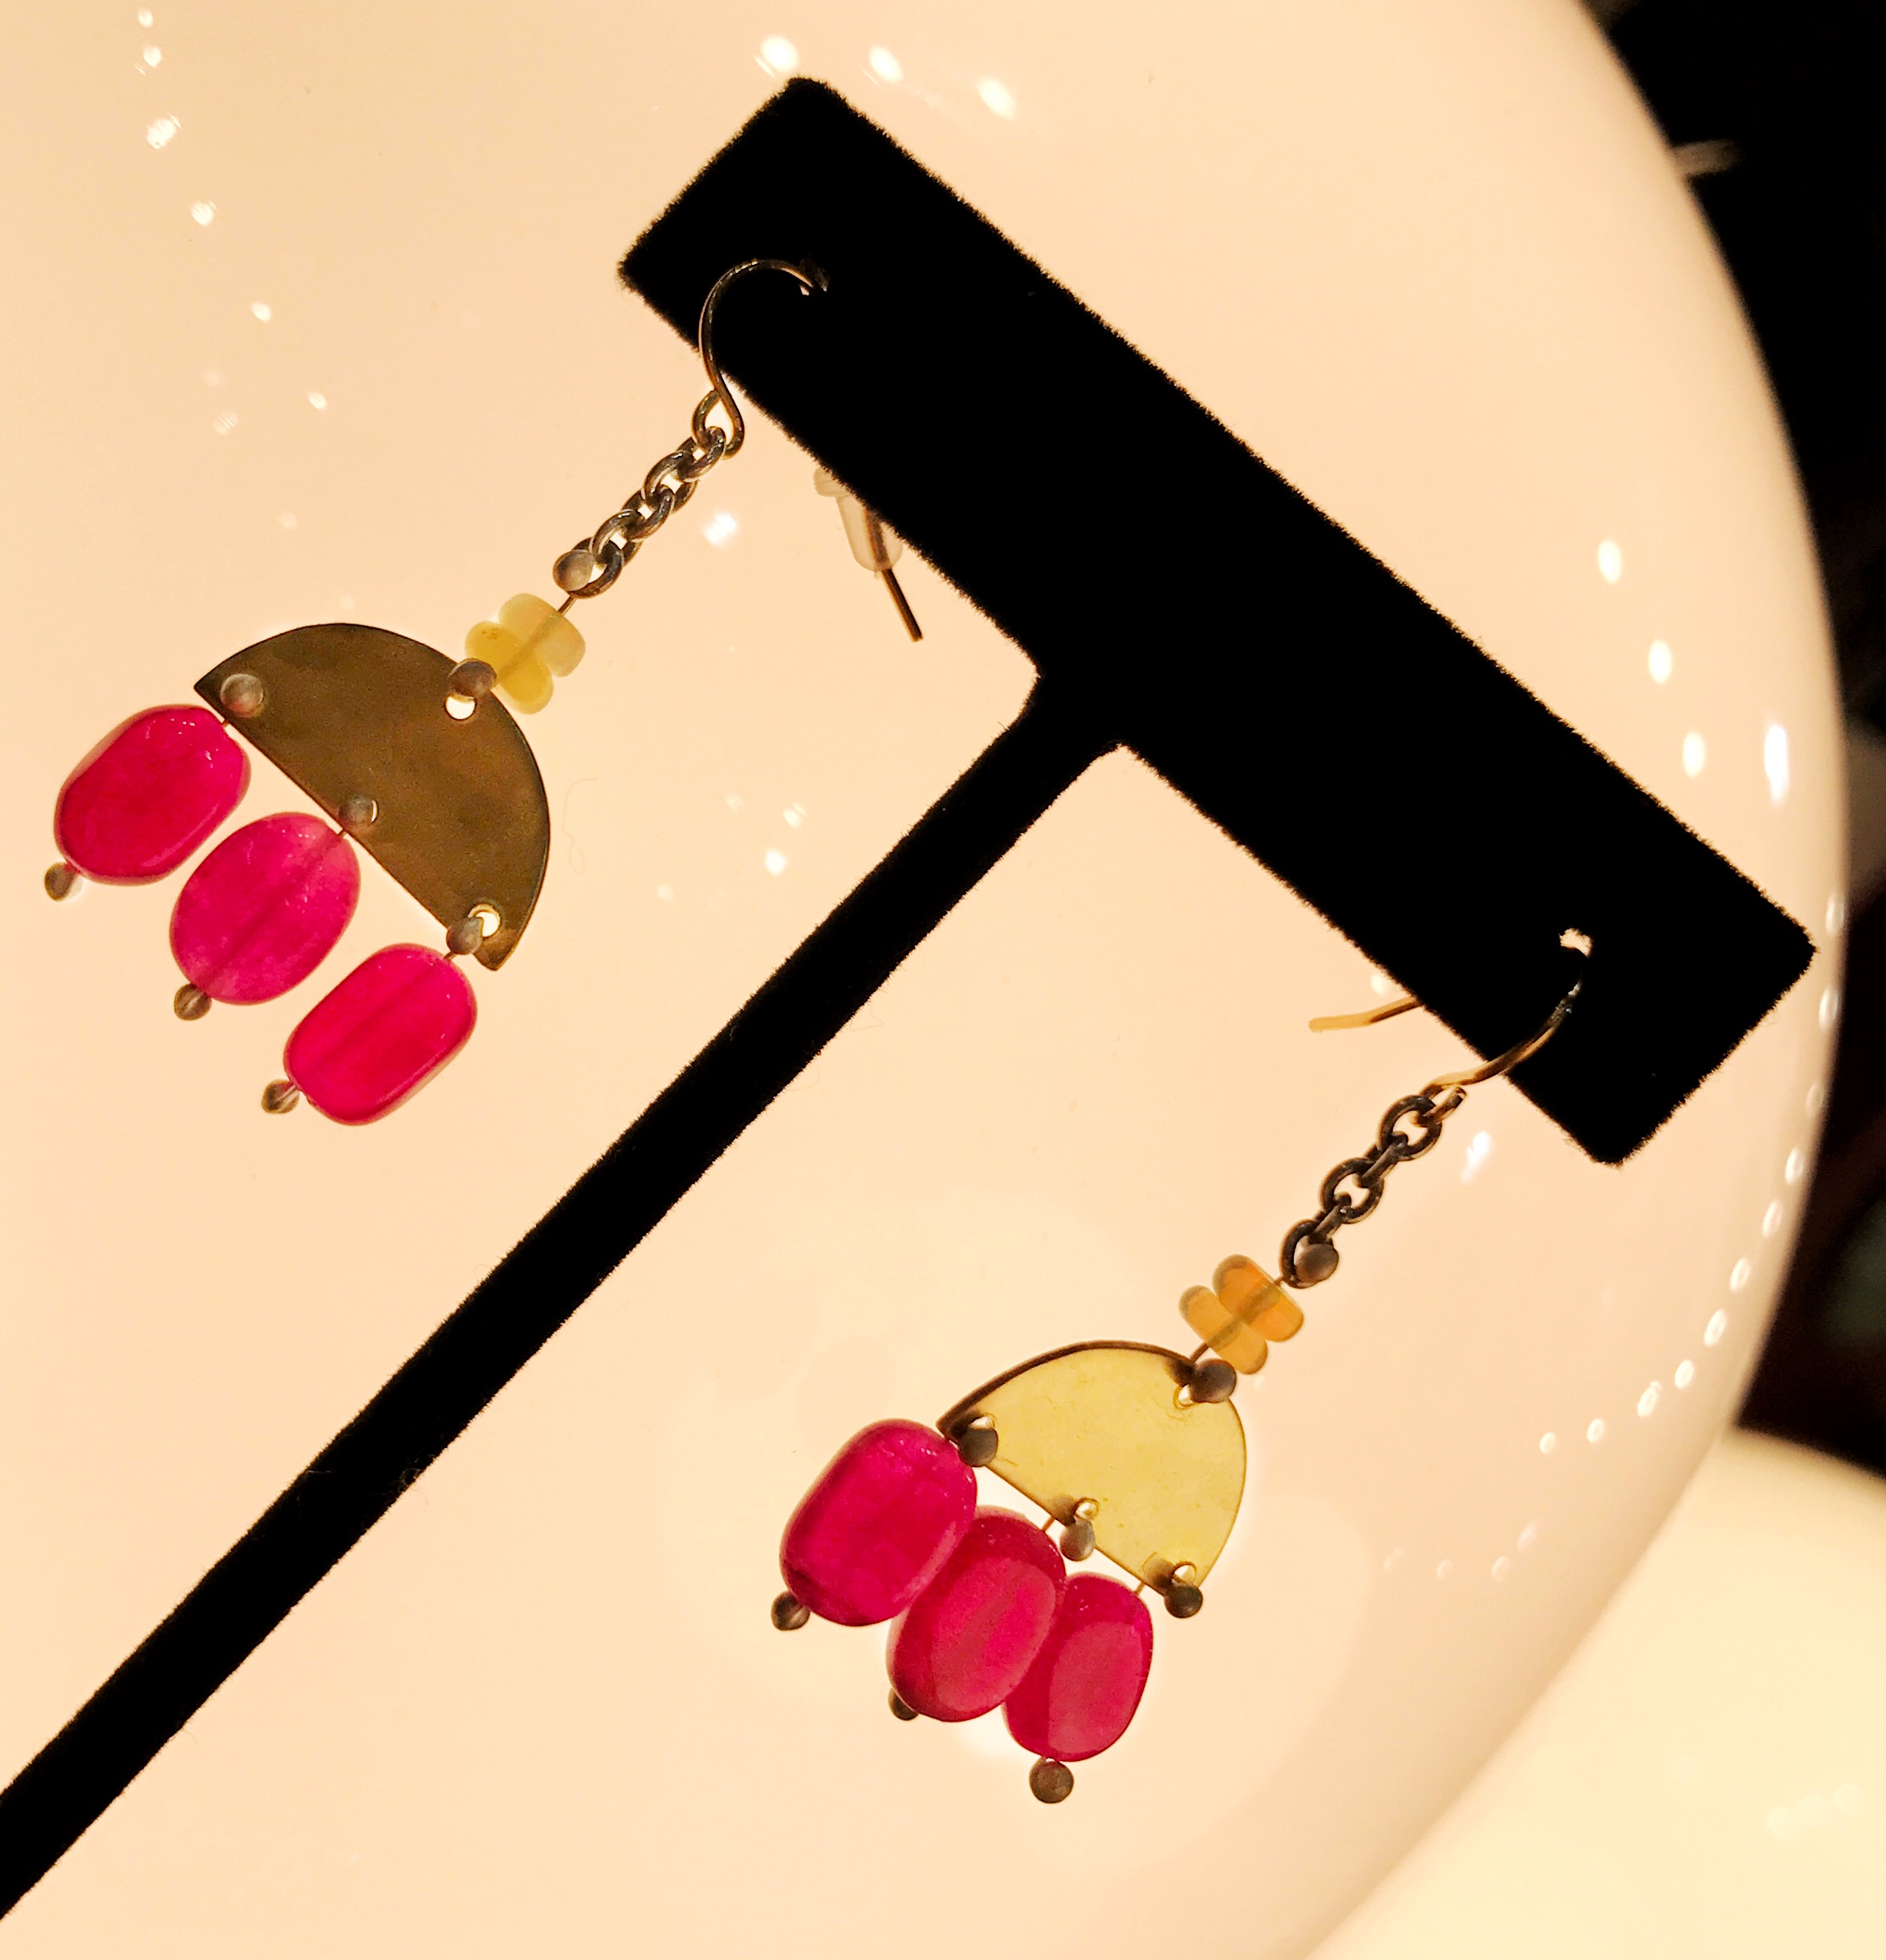 Gold and pink droplet earrings, $42 (regularly $56)